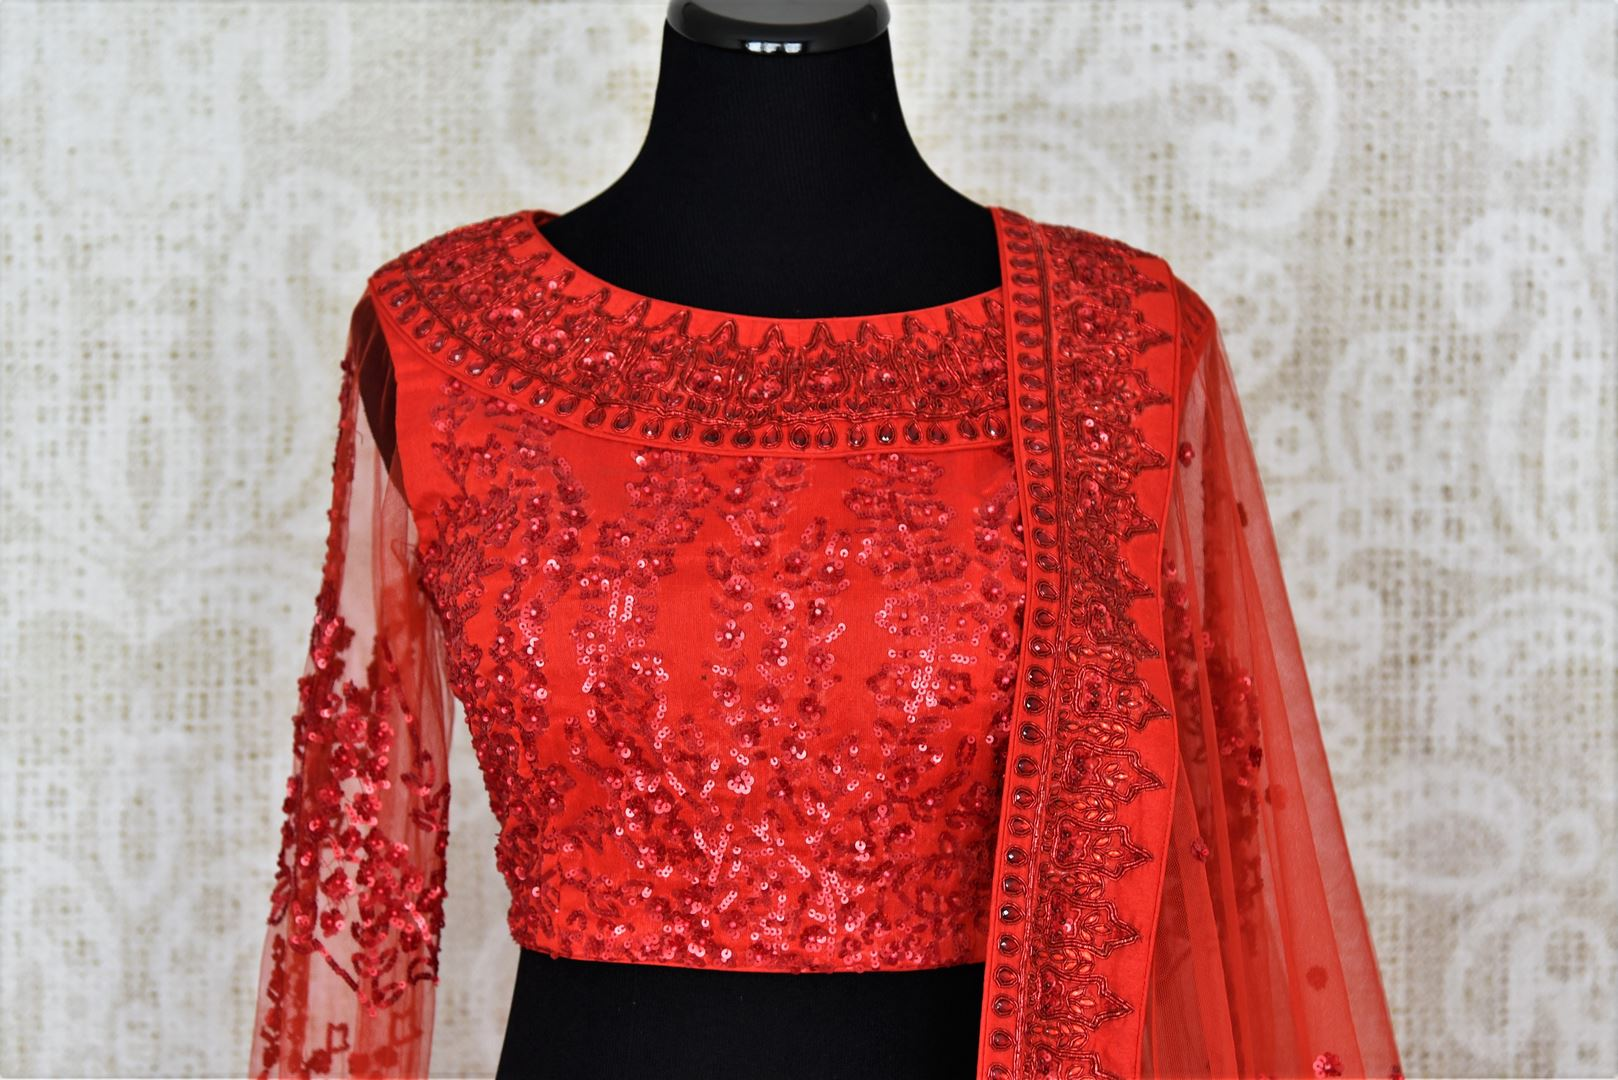 Buy red ticki work designer net lehenga with dupatta online in USA. Add brilliance to your Indian wedding look with an exquisite range of designer wedding lehengas available at Pure Elegance exclusive clothing store in USA or shop online.-blouse front